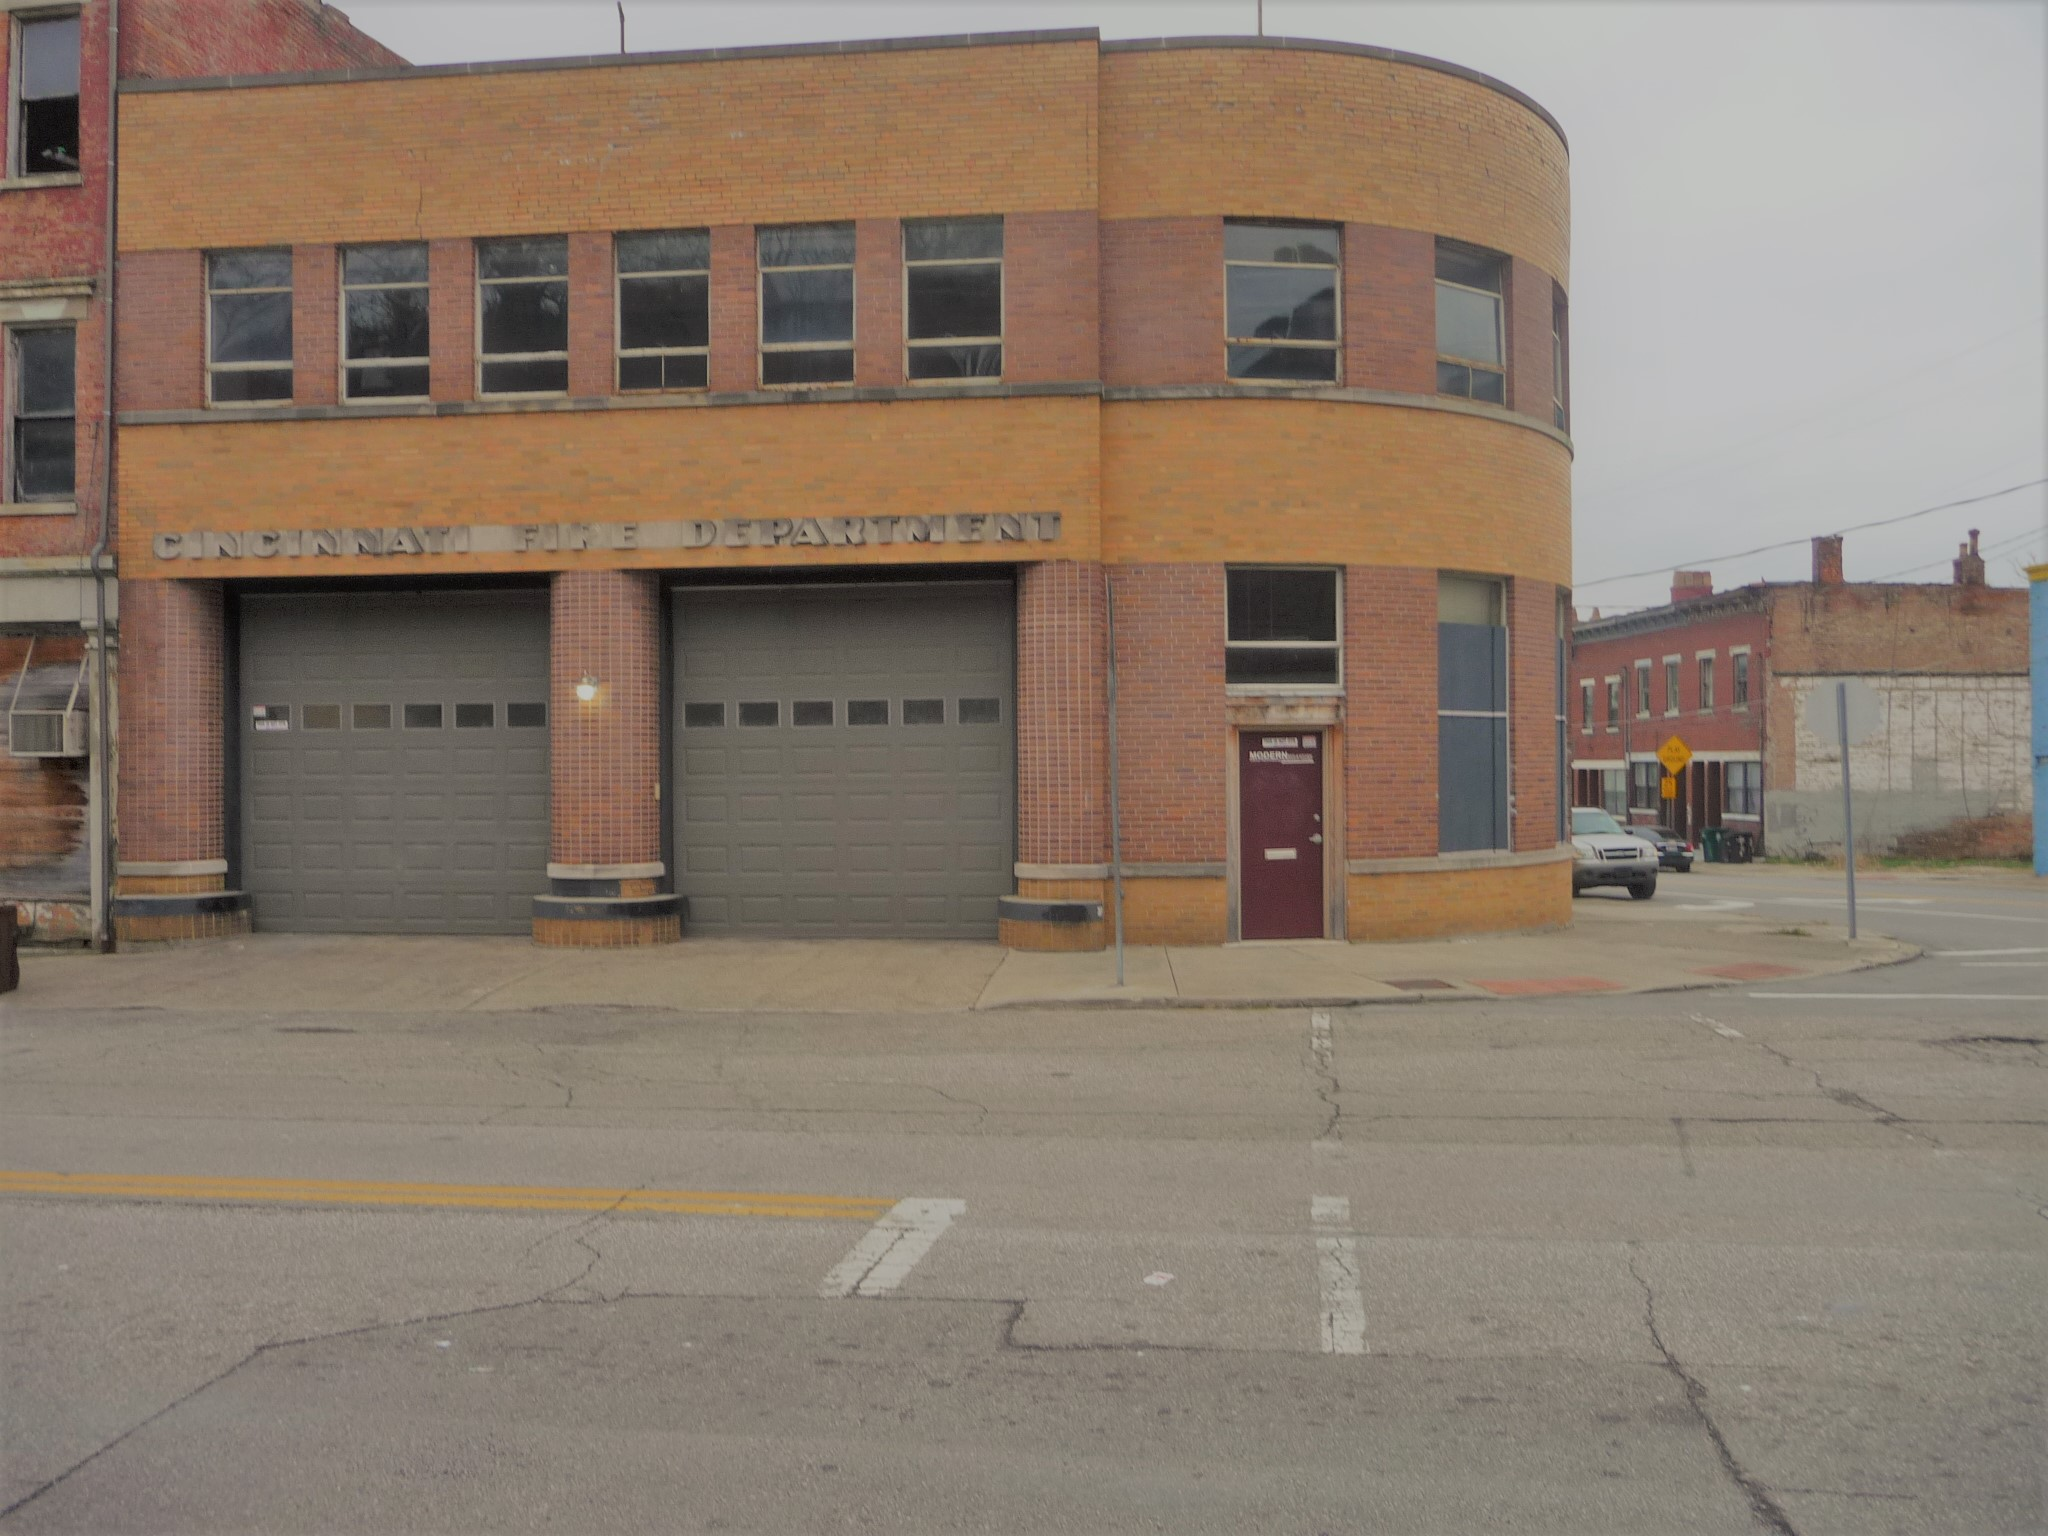 Fire Company 13 - West End